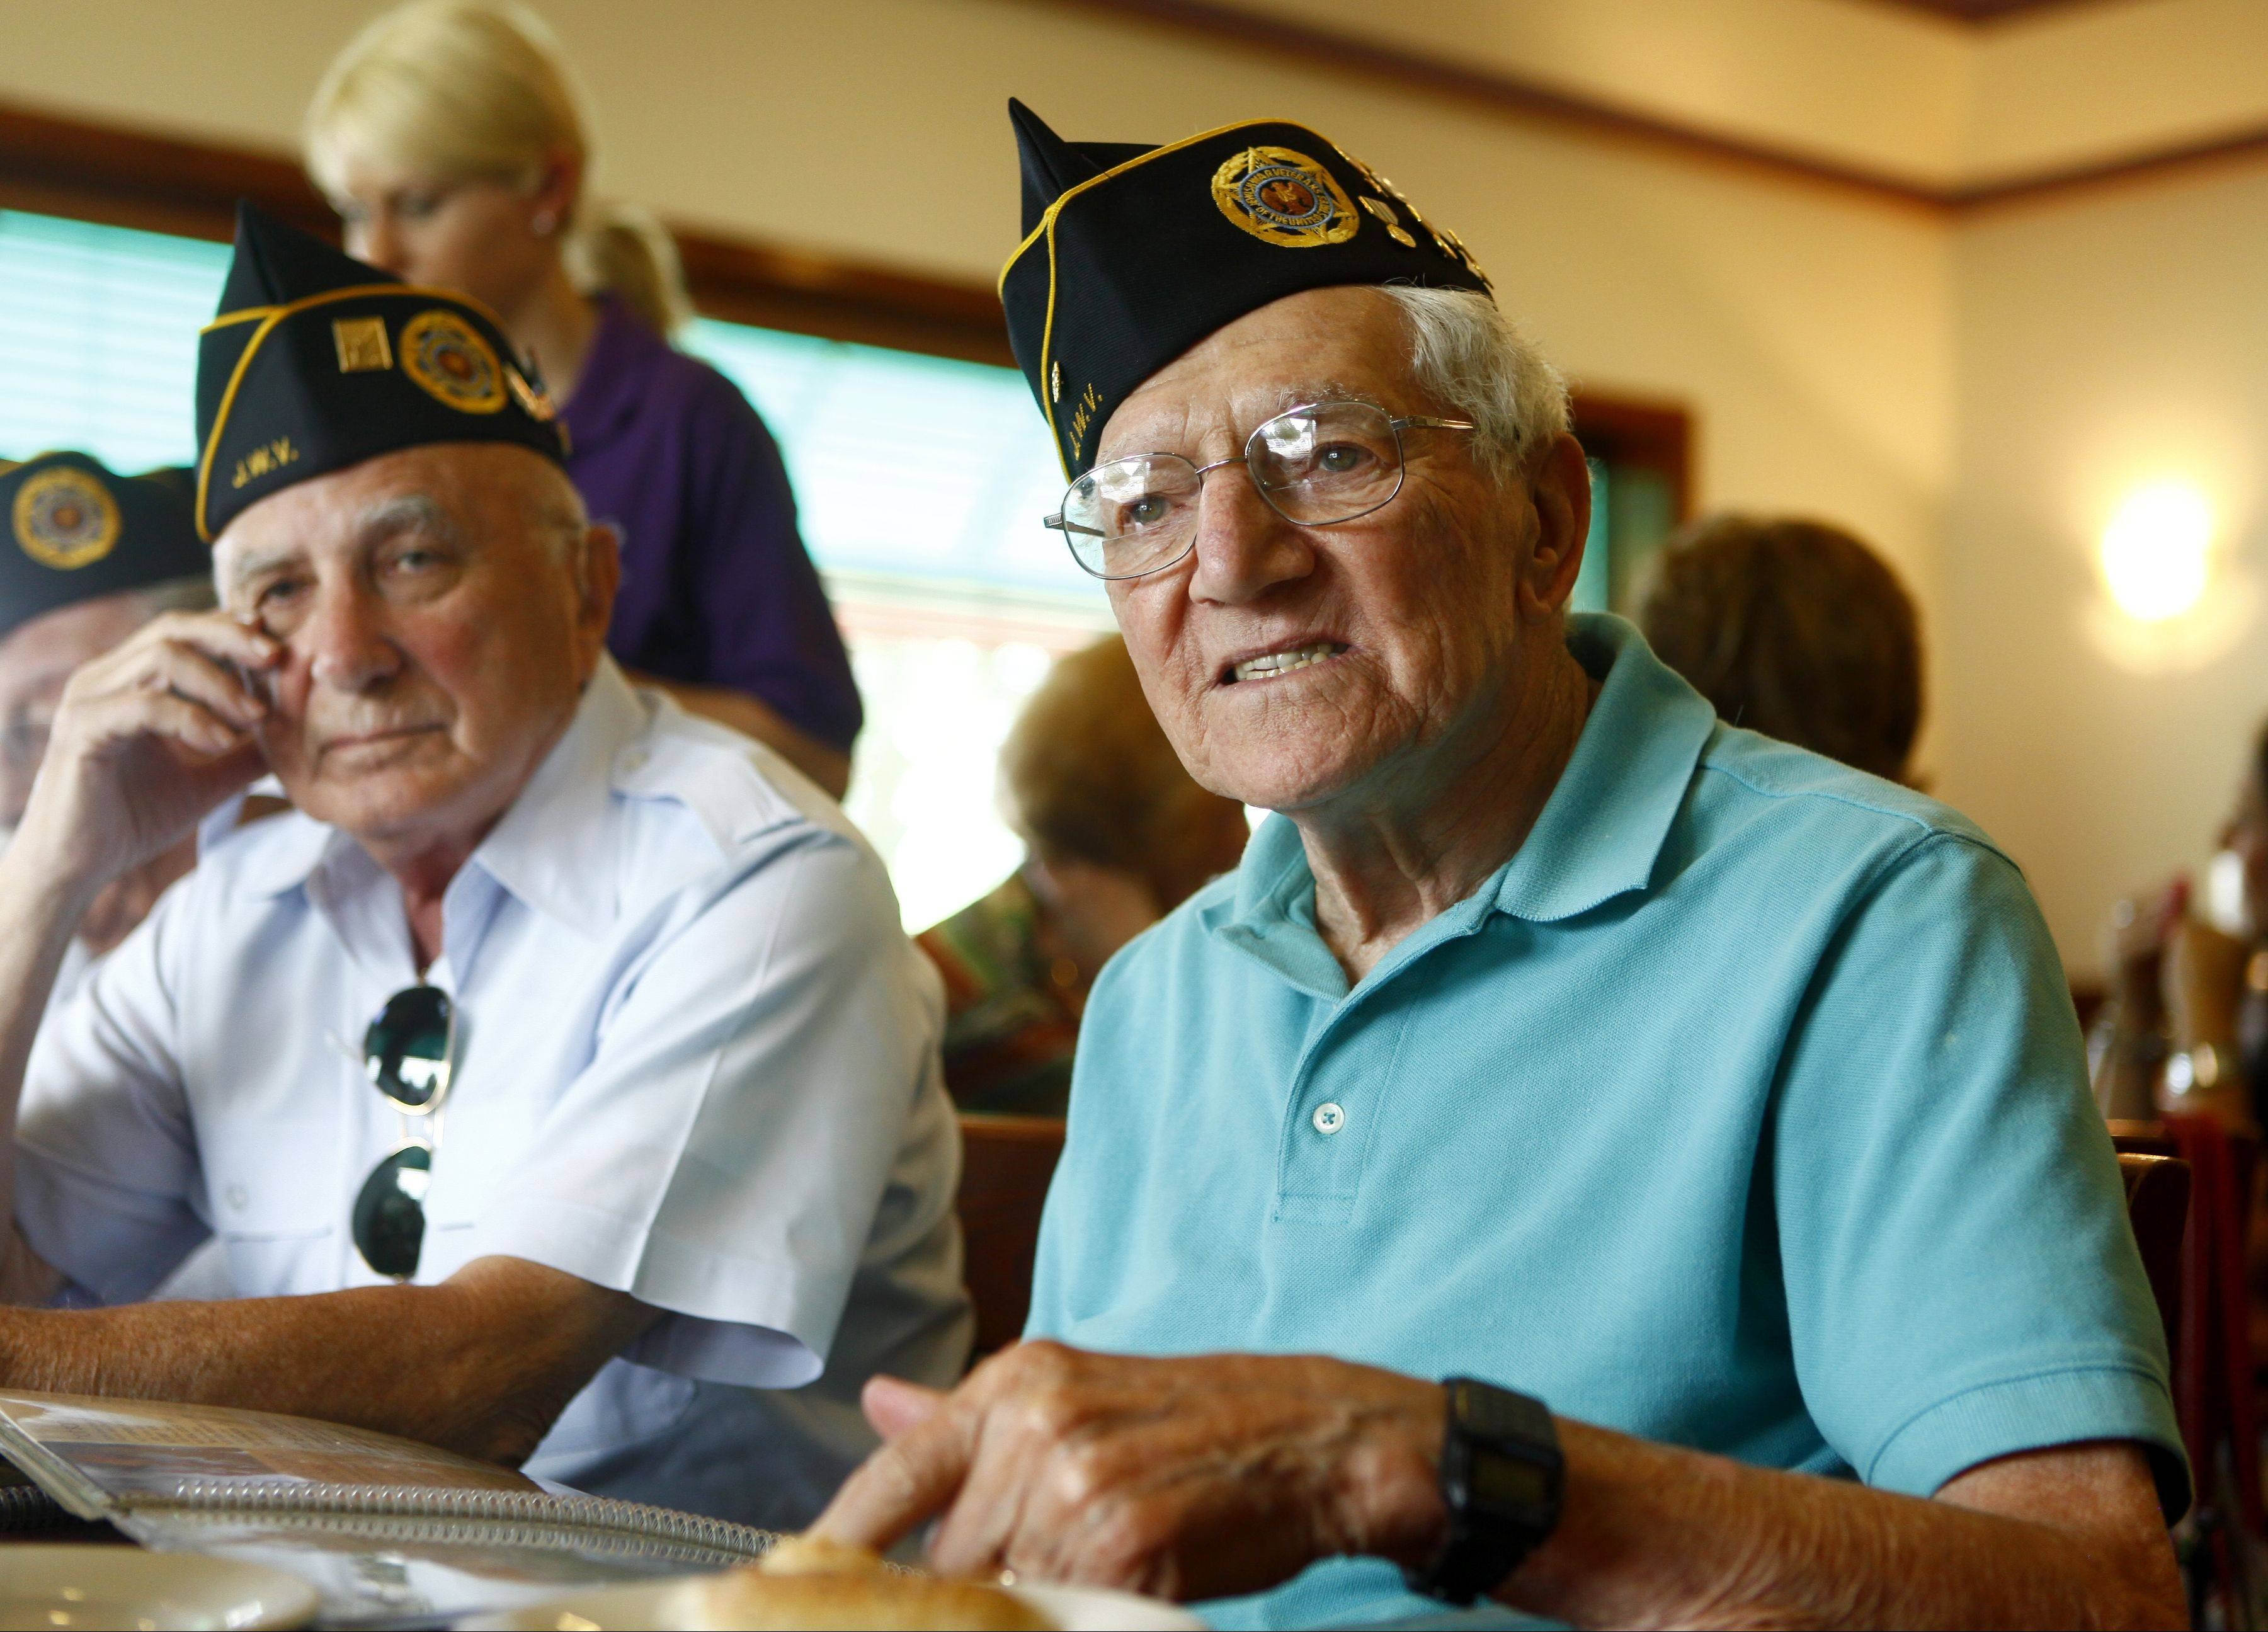 Al Kamikow, right, of Buffalo Grove, talks about his time in the service during World War II while fellow member, Michael Hoff, of Lake Forest, listens last week. Kamikow and Hoff are members of the Buffalo Grove Post 89.